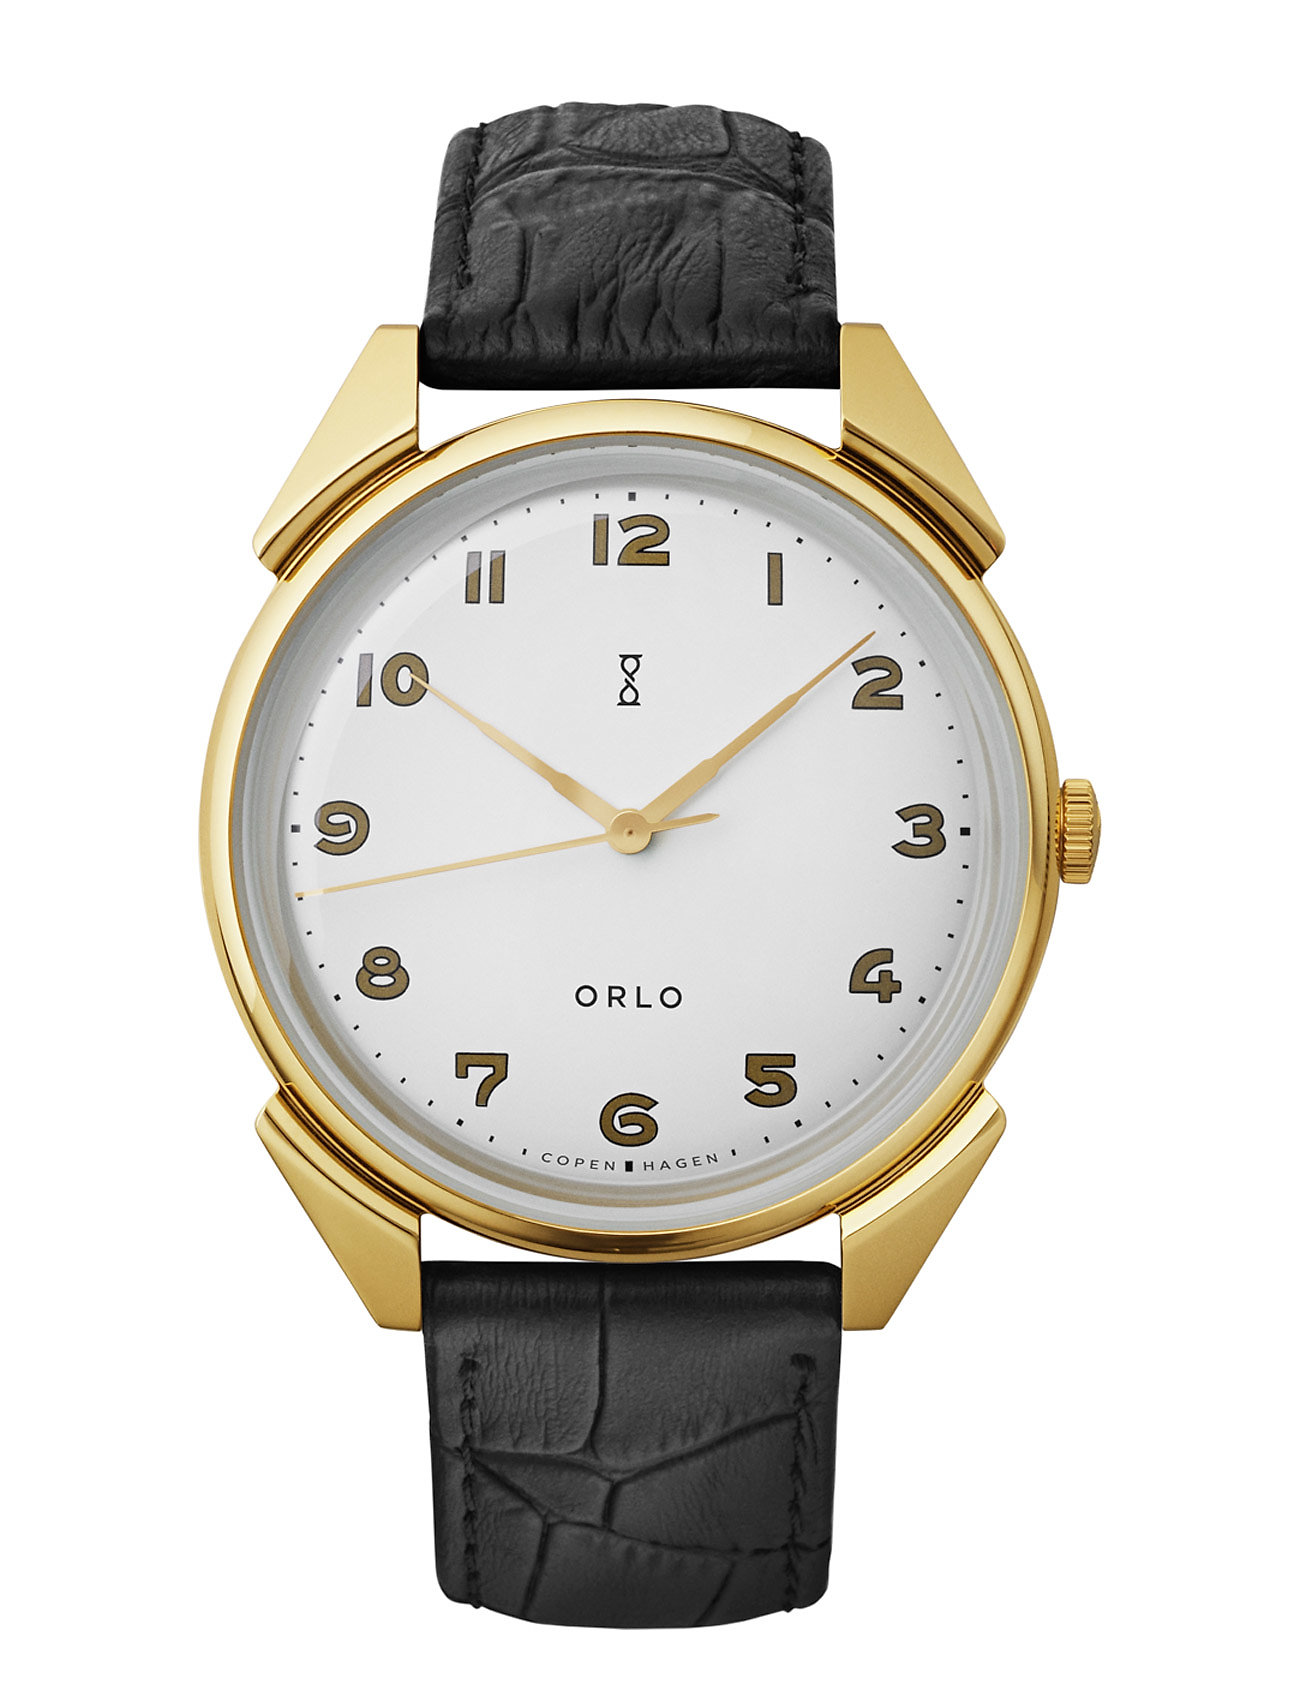 Orlo watches